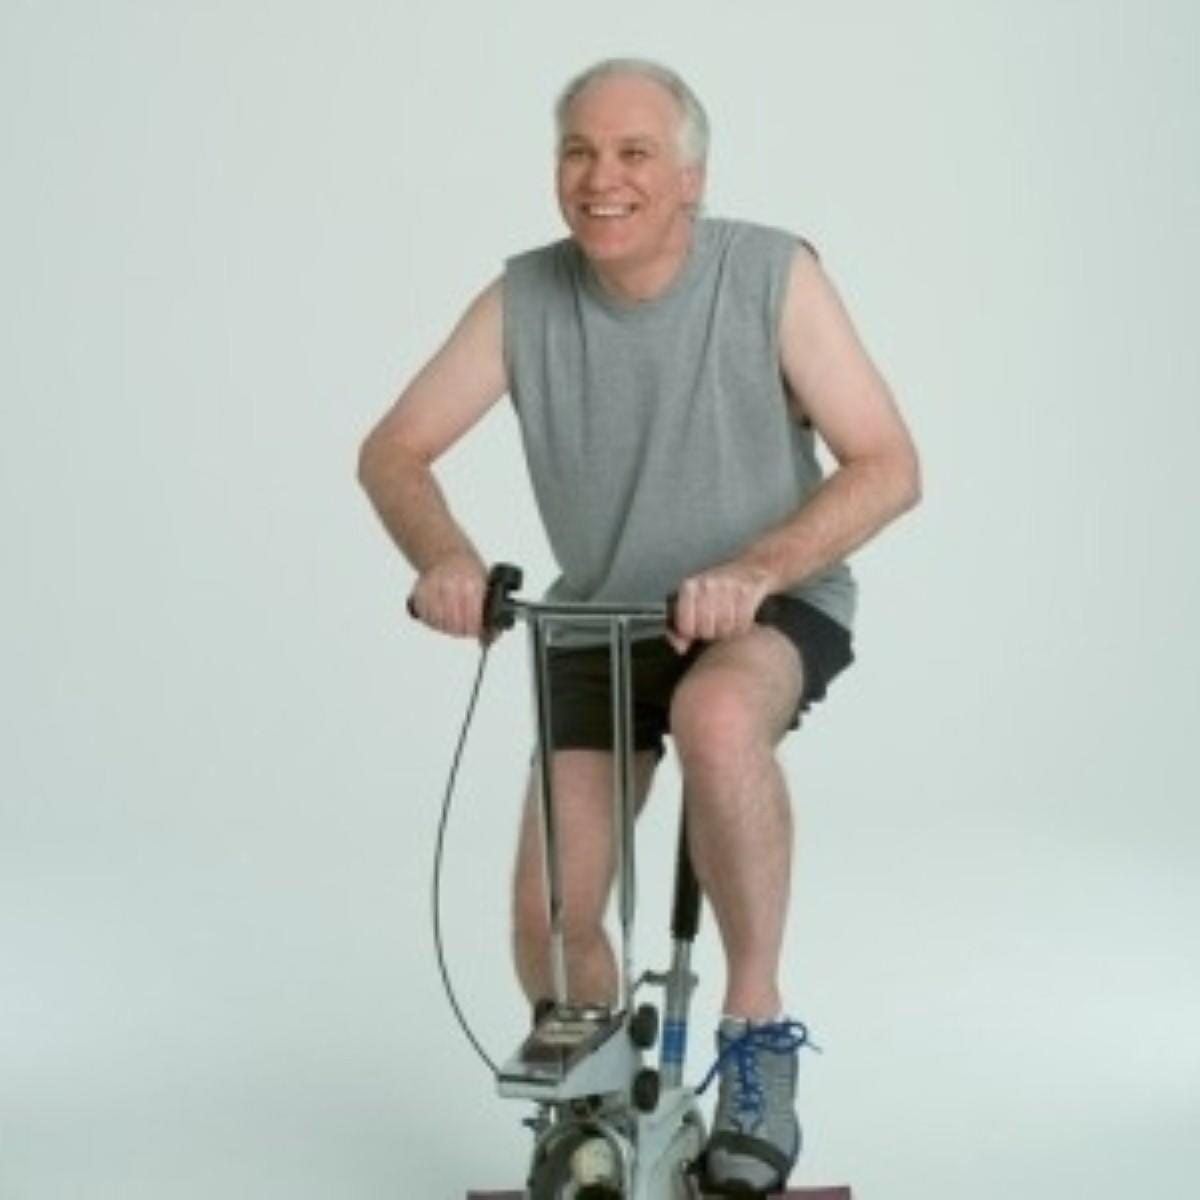 Exercise has health benefits for people of all ages